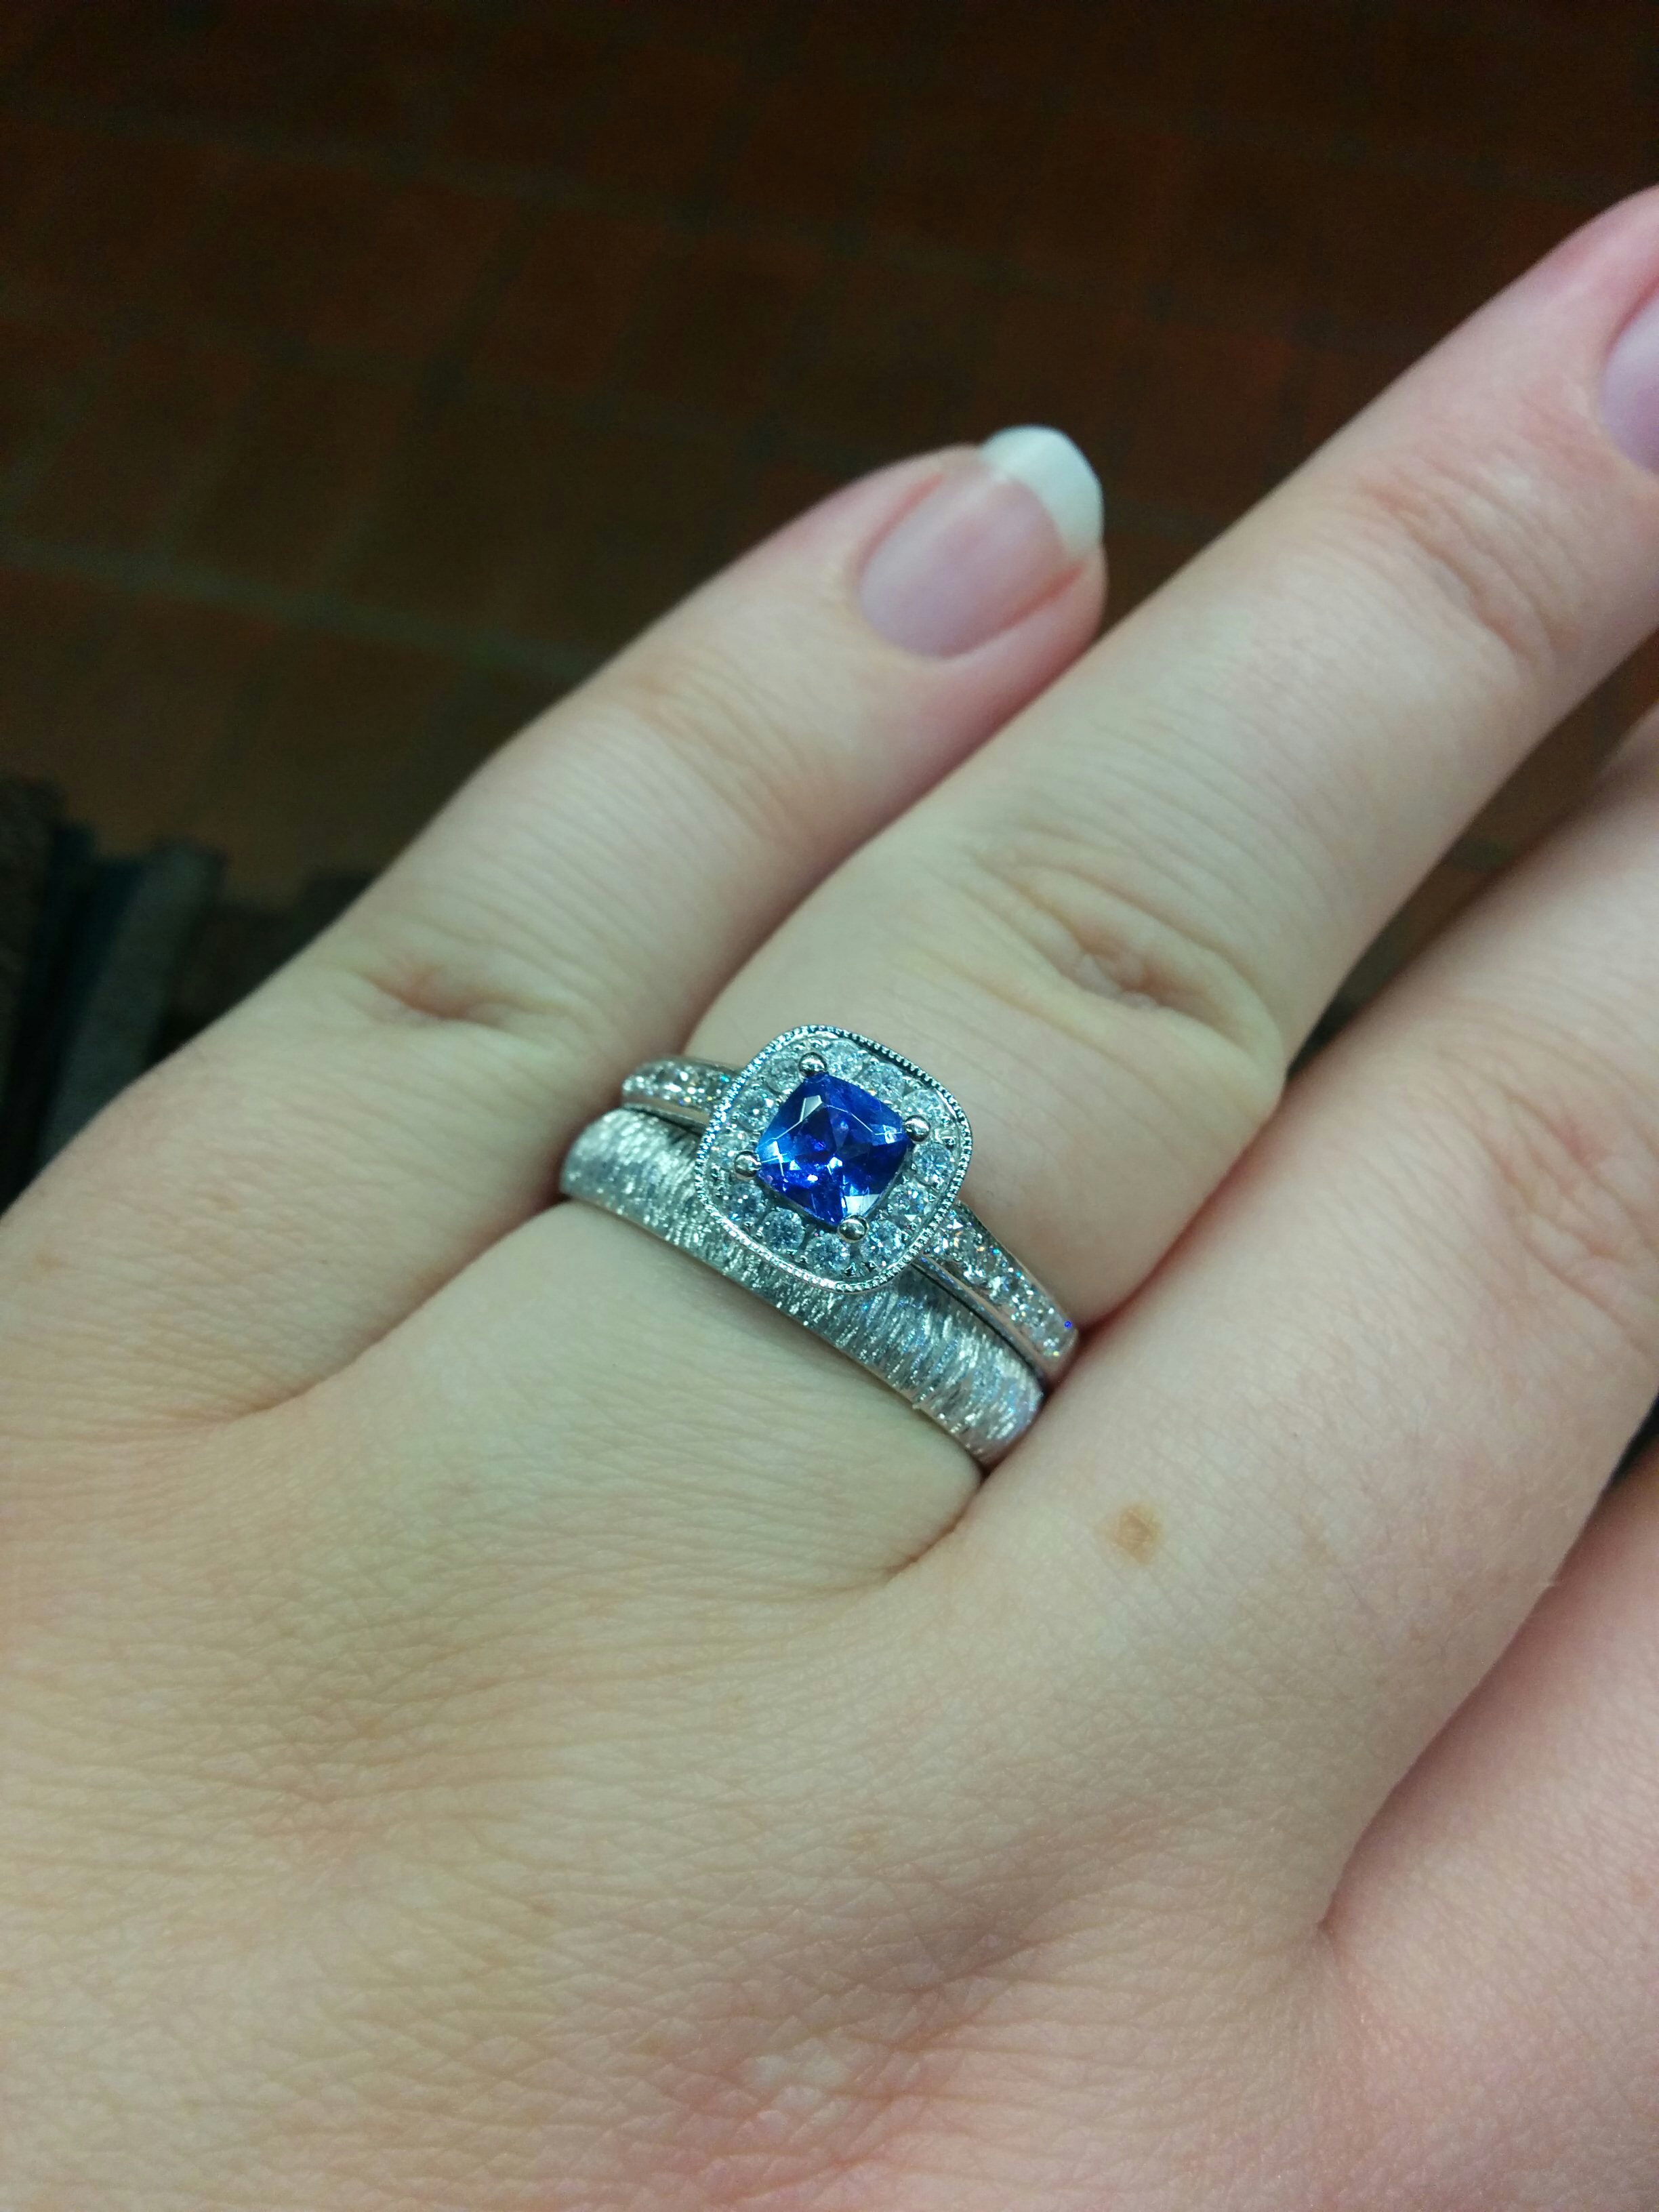 wedding ring set tanzanite wedding rings engagement ring with 5 carat tanzanite and 5 carat cwt of diamonds I love them so much and don t have anyone nearby to show them too